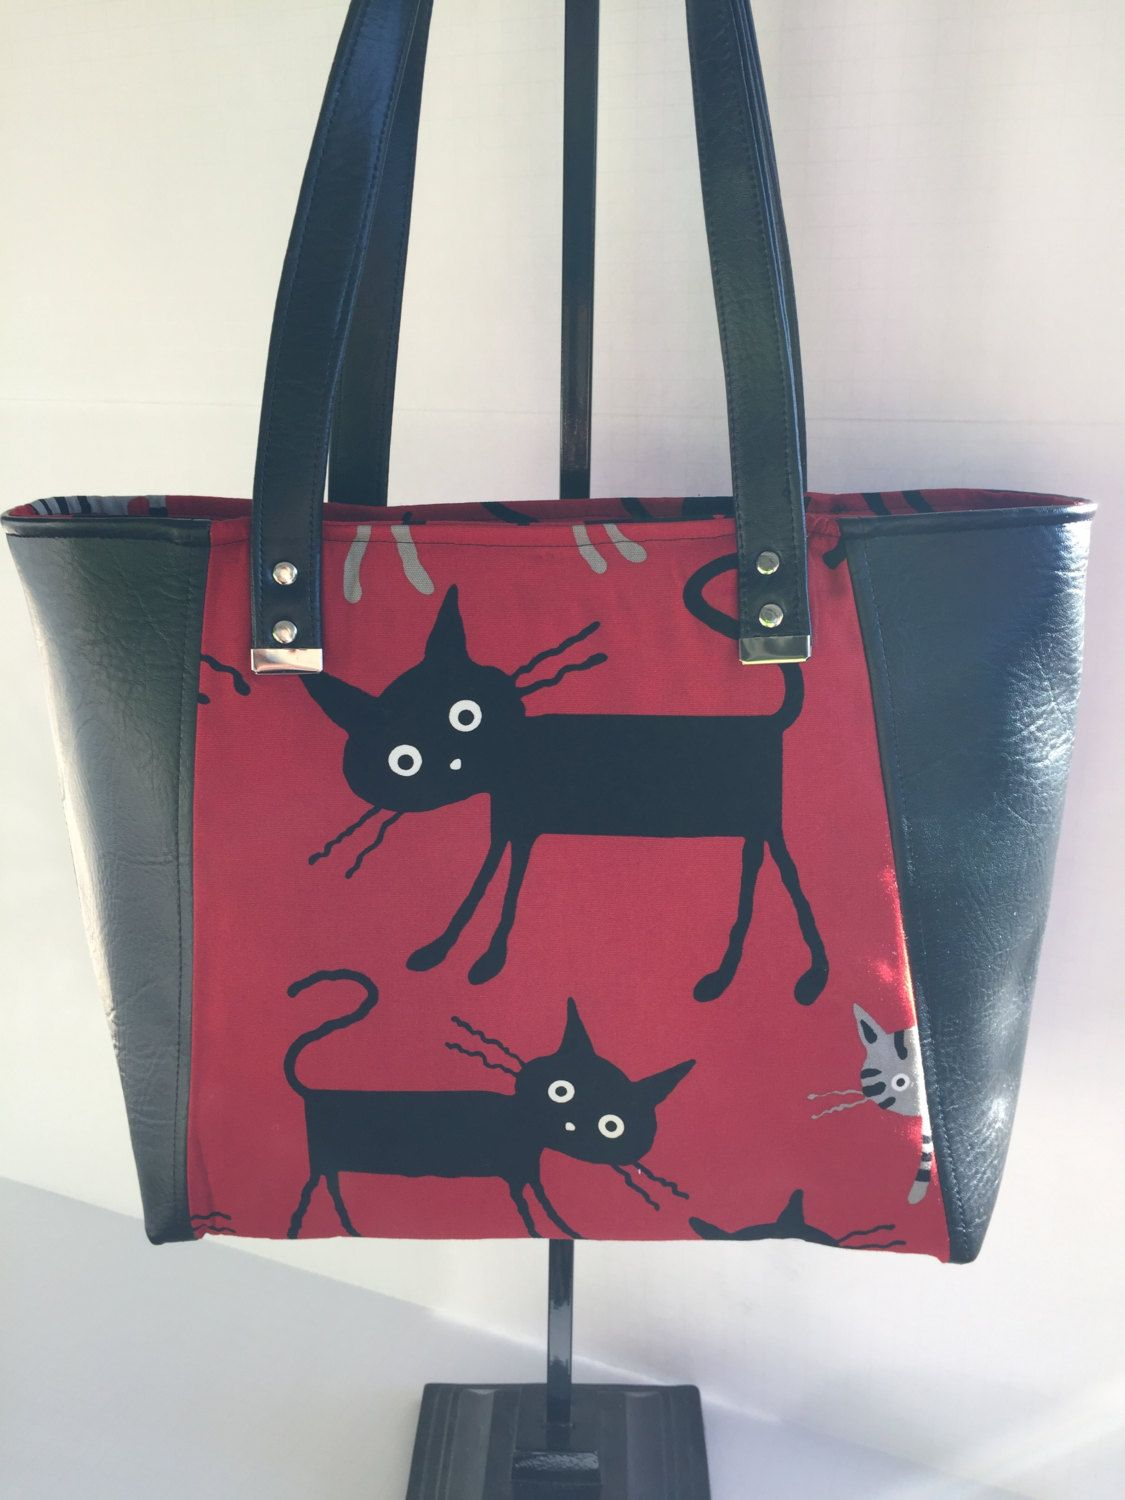 a11cd323ef Red and Black Japanese Canvas Everyday Tote Bag with Black Vinyl Accents,  Vegan Leather, Shoulder Bag, Women's Purse by JazzyJoDesigns on Etsy